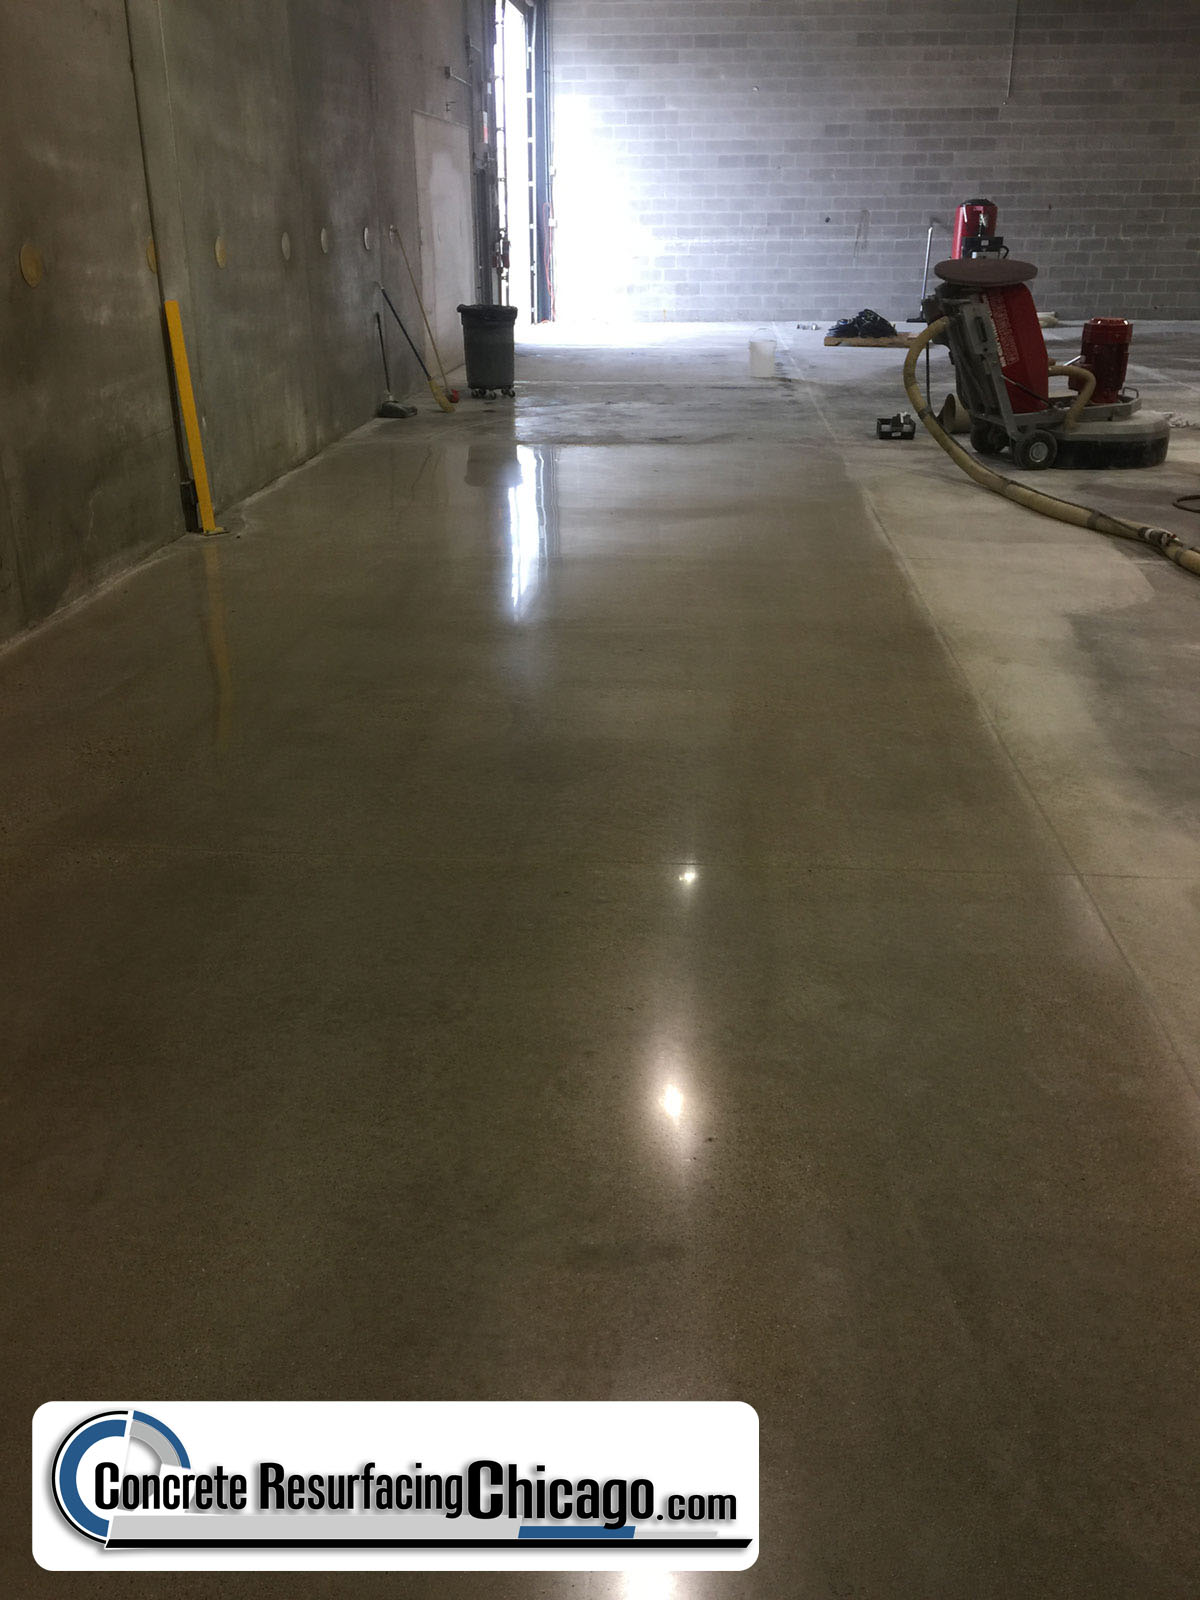 630-448-0317 - Polished Concrete Polished Concrete Overlay Urethane Cement Floors Concrete Resurfacing Solutions Serving Chicagoland